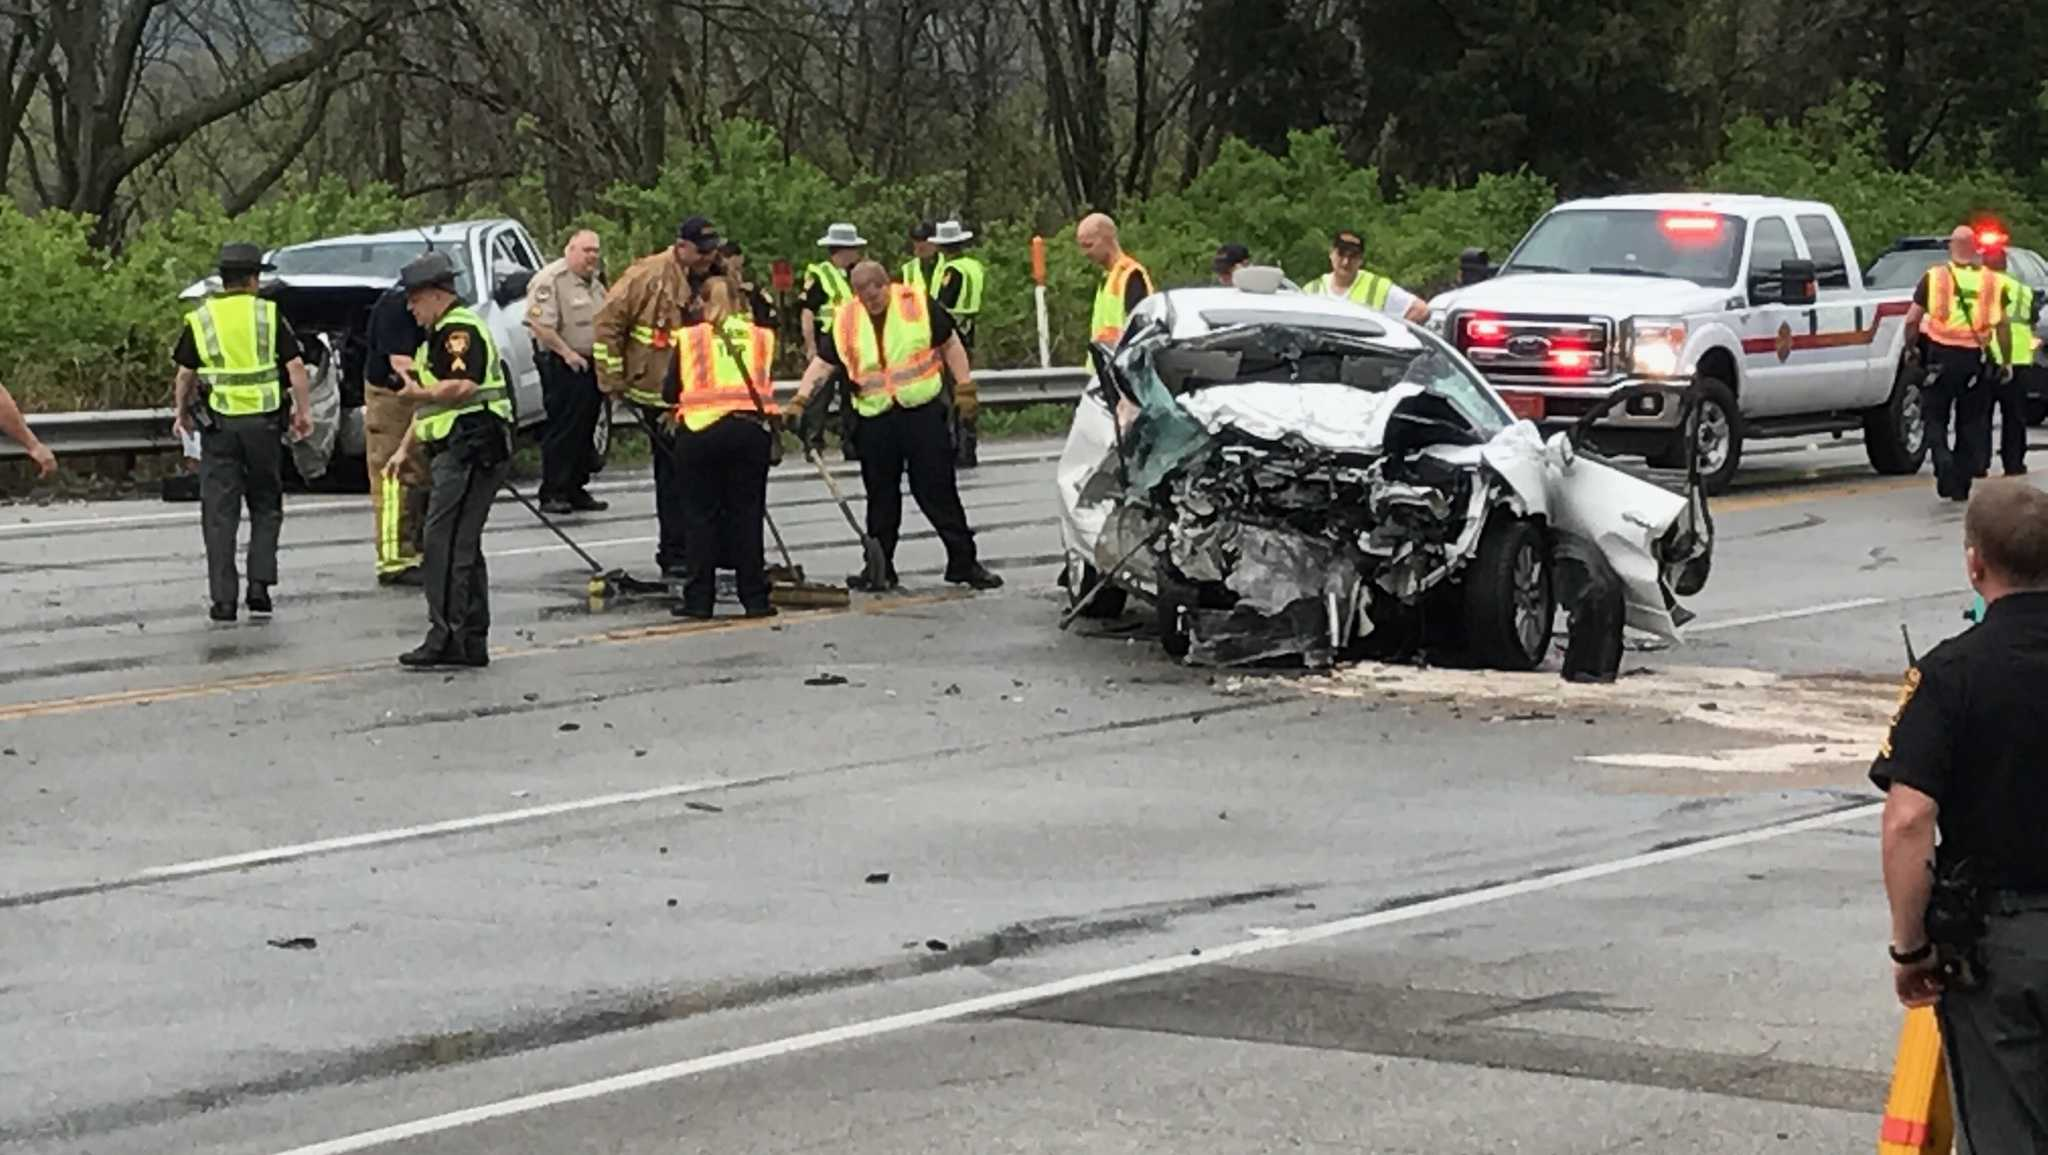 A crash on U.S. 50 closed the highway April 11, 2017